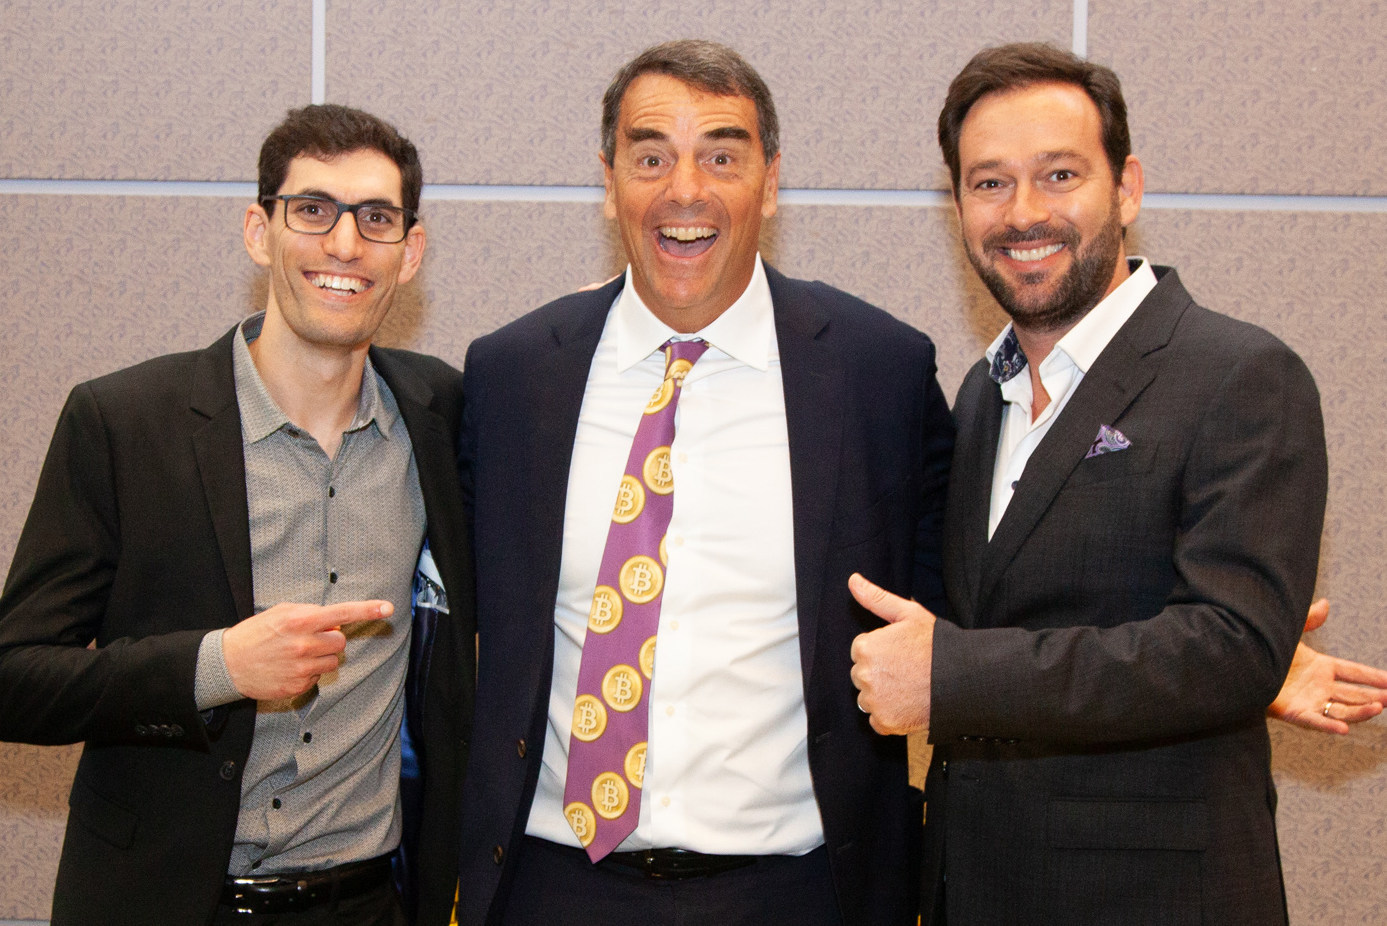 Tim Draper's Venture Studio to Triple-Down on Blockchain Projects With a $25M Fund